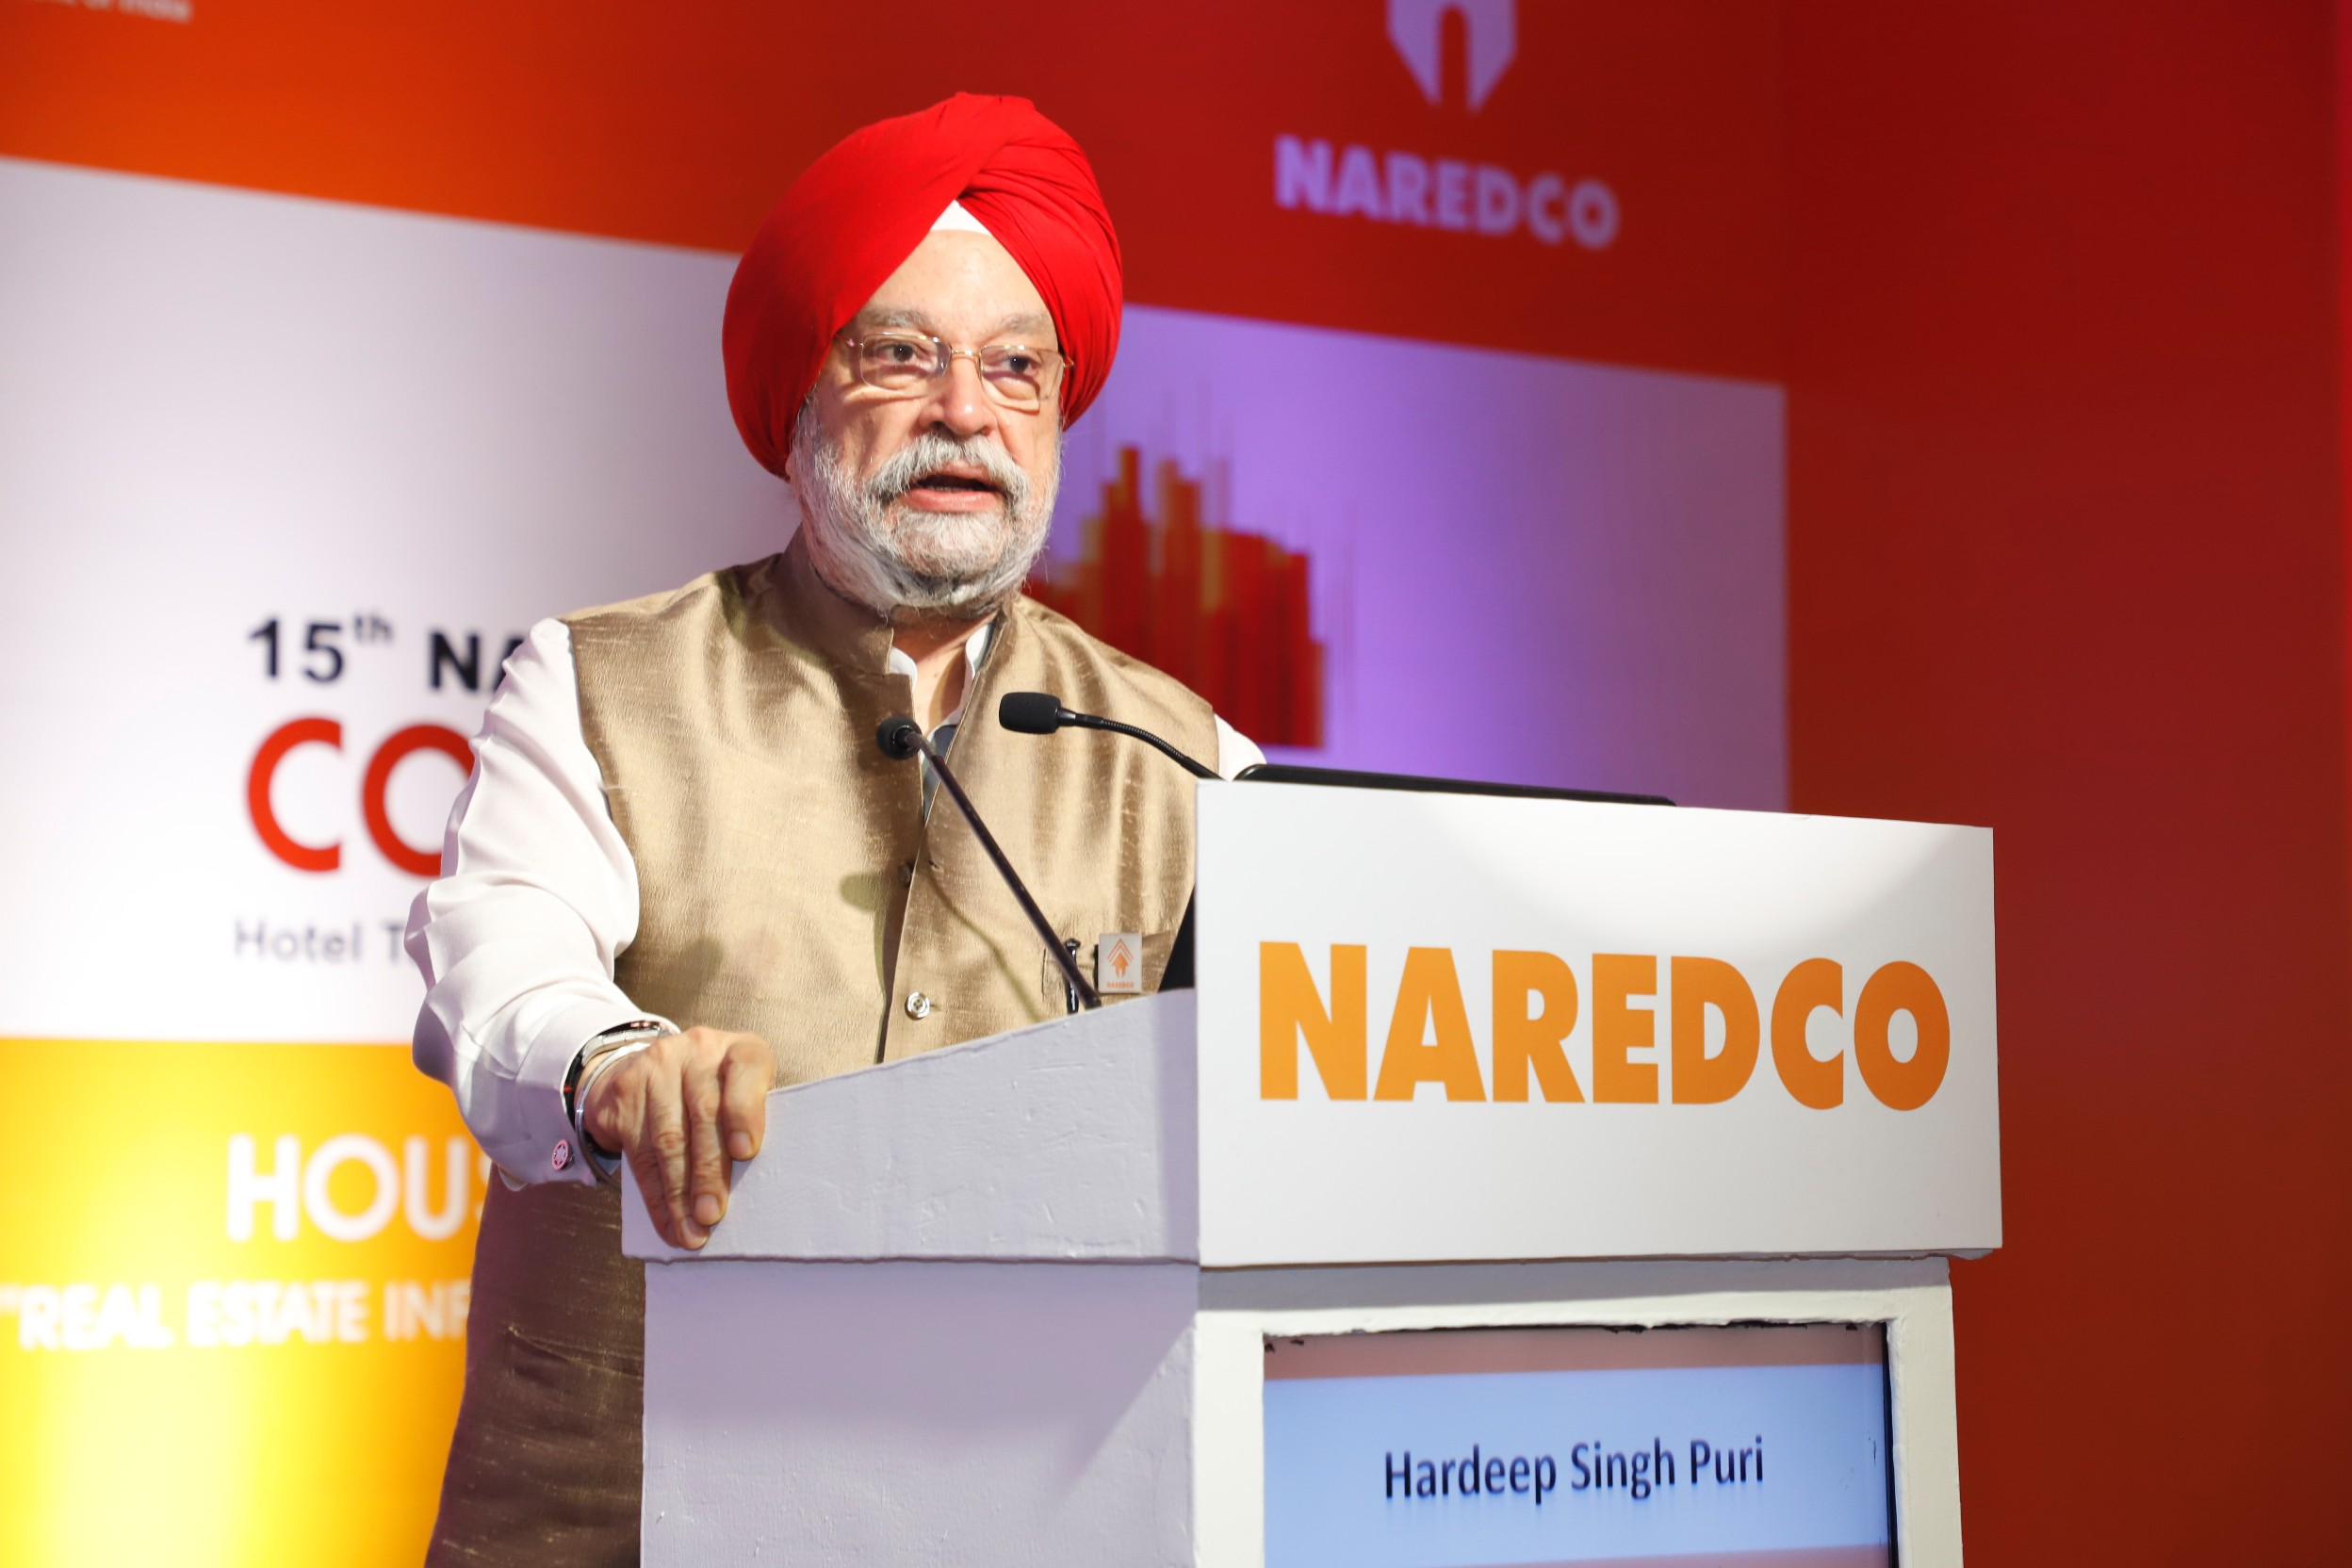 Target of Housing For All by 2022 will be met two years in advance: Hardeep Singh Puri